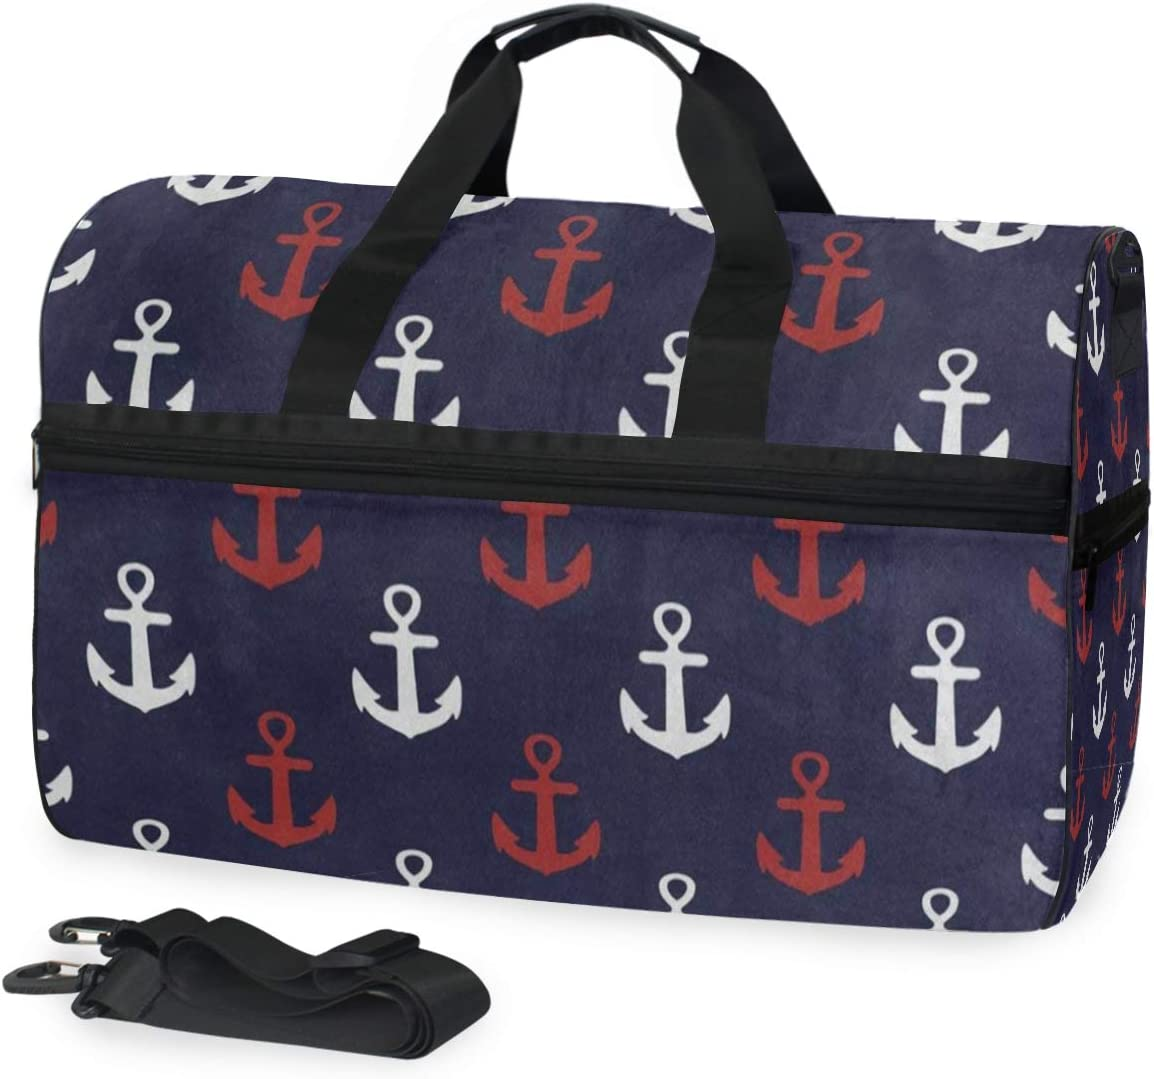 Duffle Bag Blue White Red Anchor Gym Bag with Shoe Compartment Sport Bag for Men Women